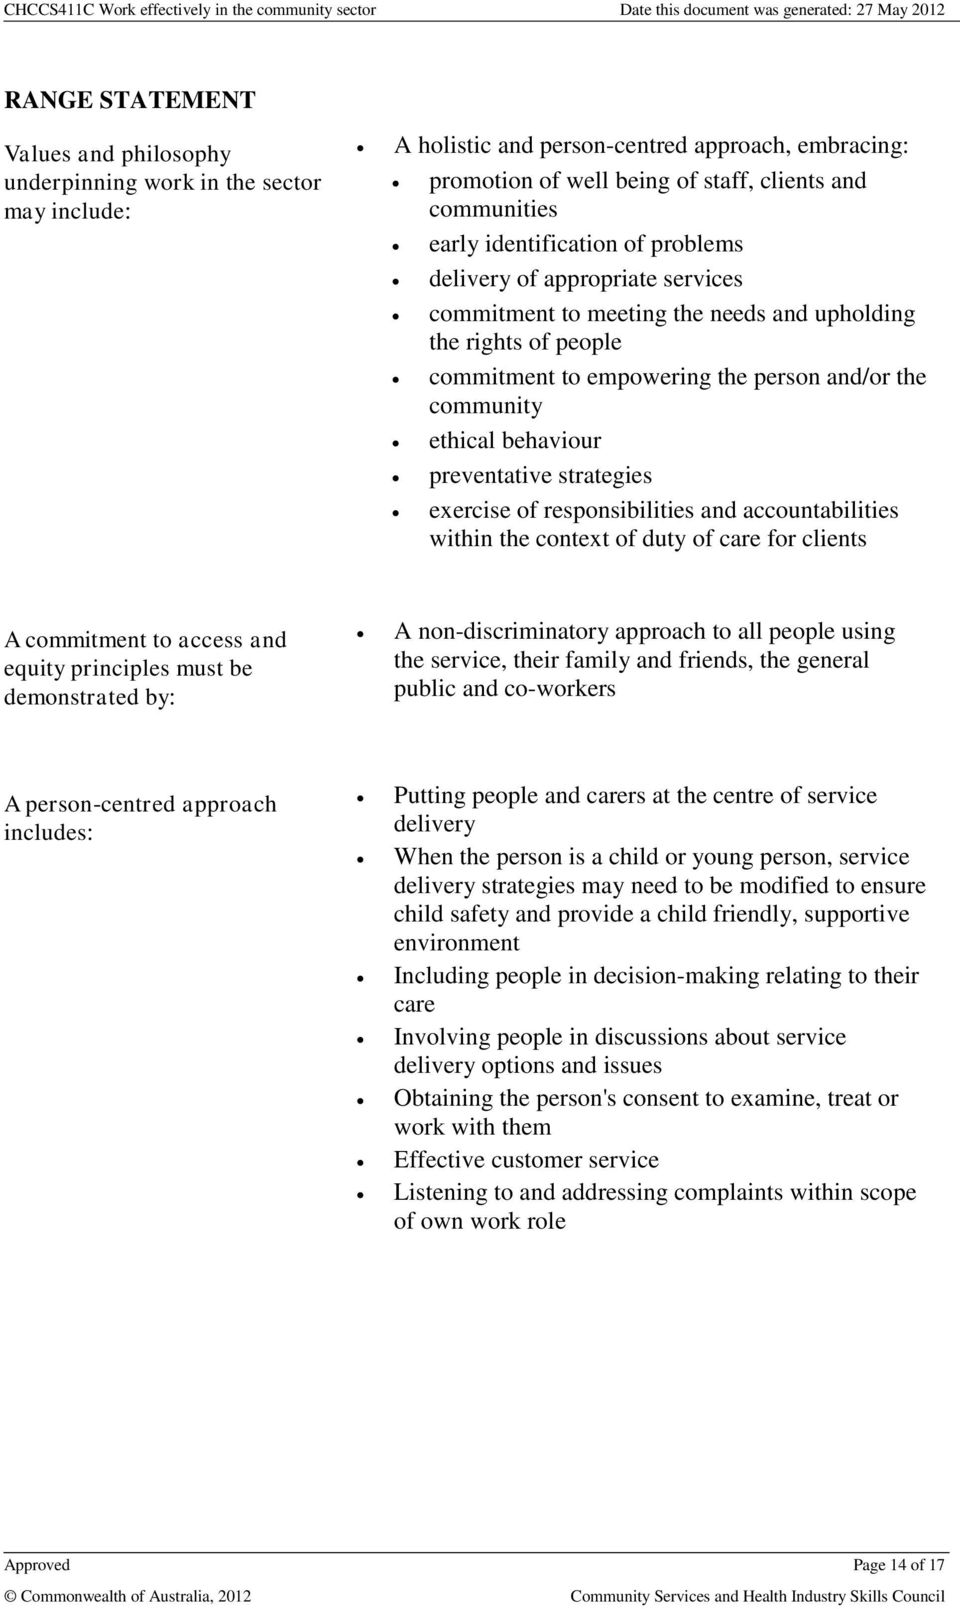 chccs411a work effectively in the community sector Note: this topic — work ethically, appears in three units of competency in this   and ethical framework chccs411a work effectively in the community sector.